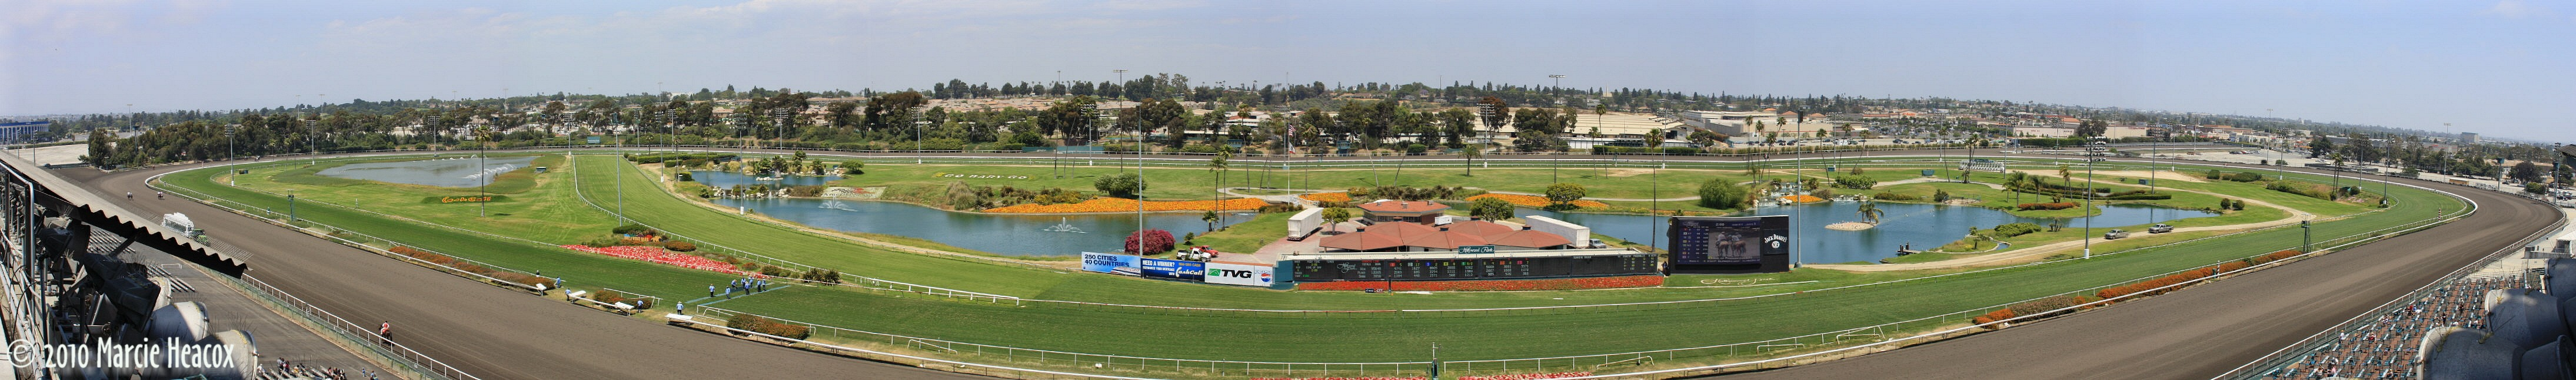 Announcer's View of Hollywood Park